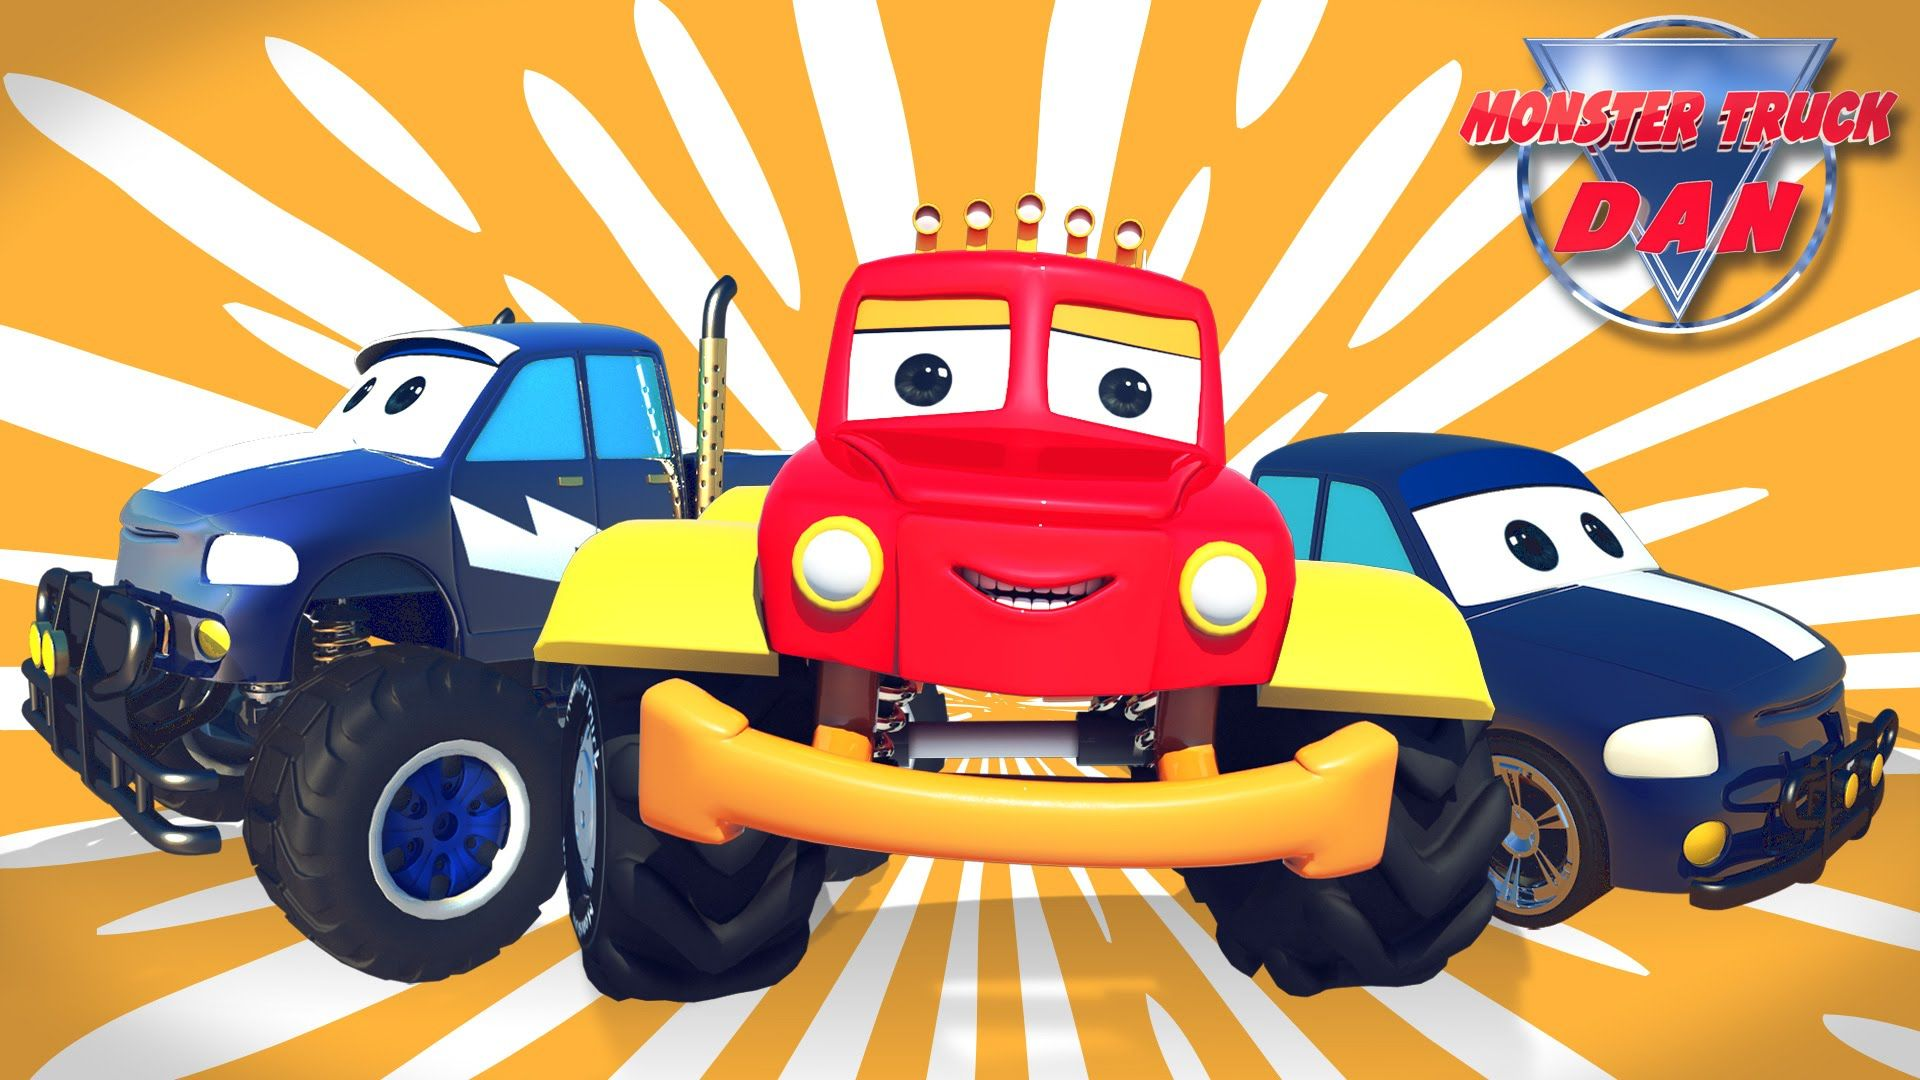 Monster Truck Dan Is Back With A Friend Who Is A Whole Lot Of